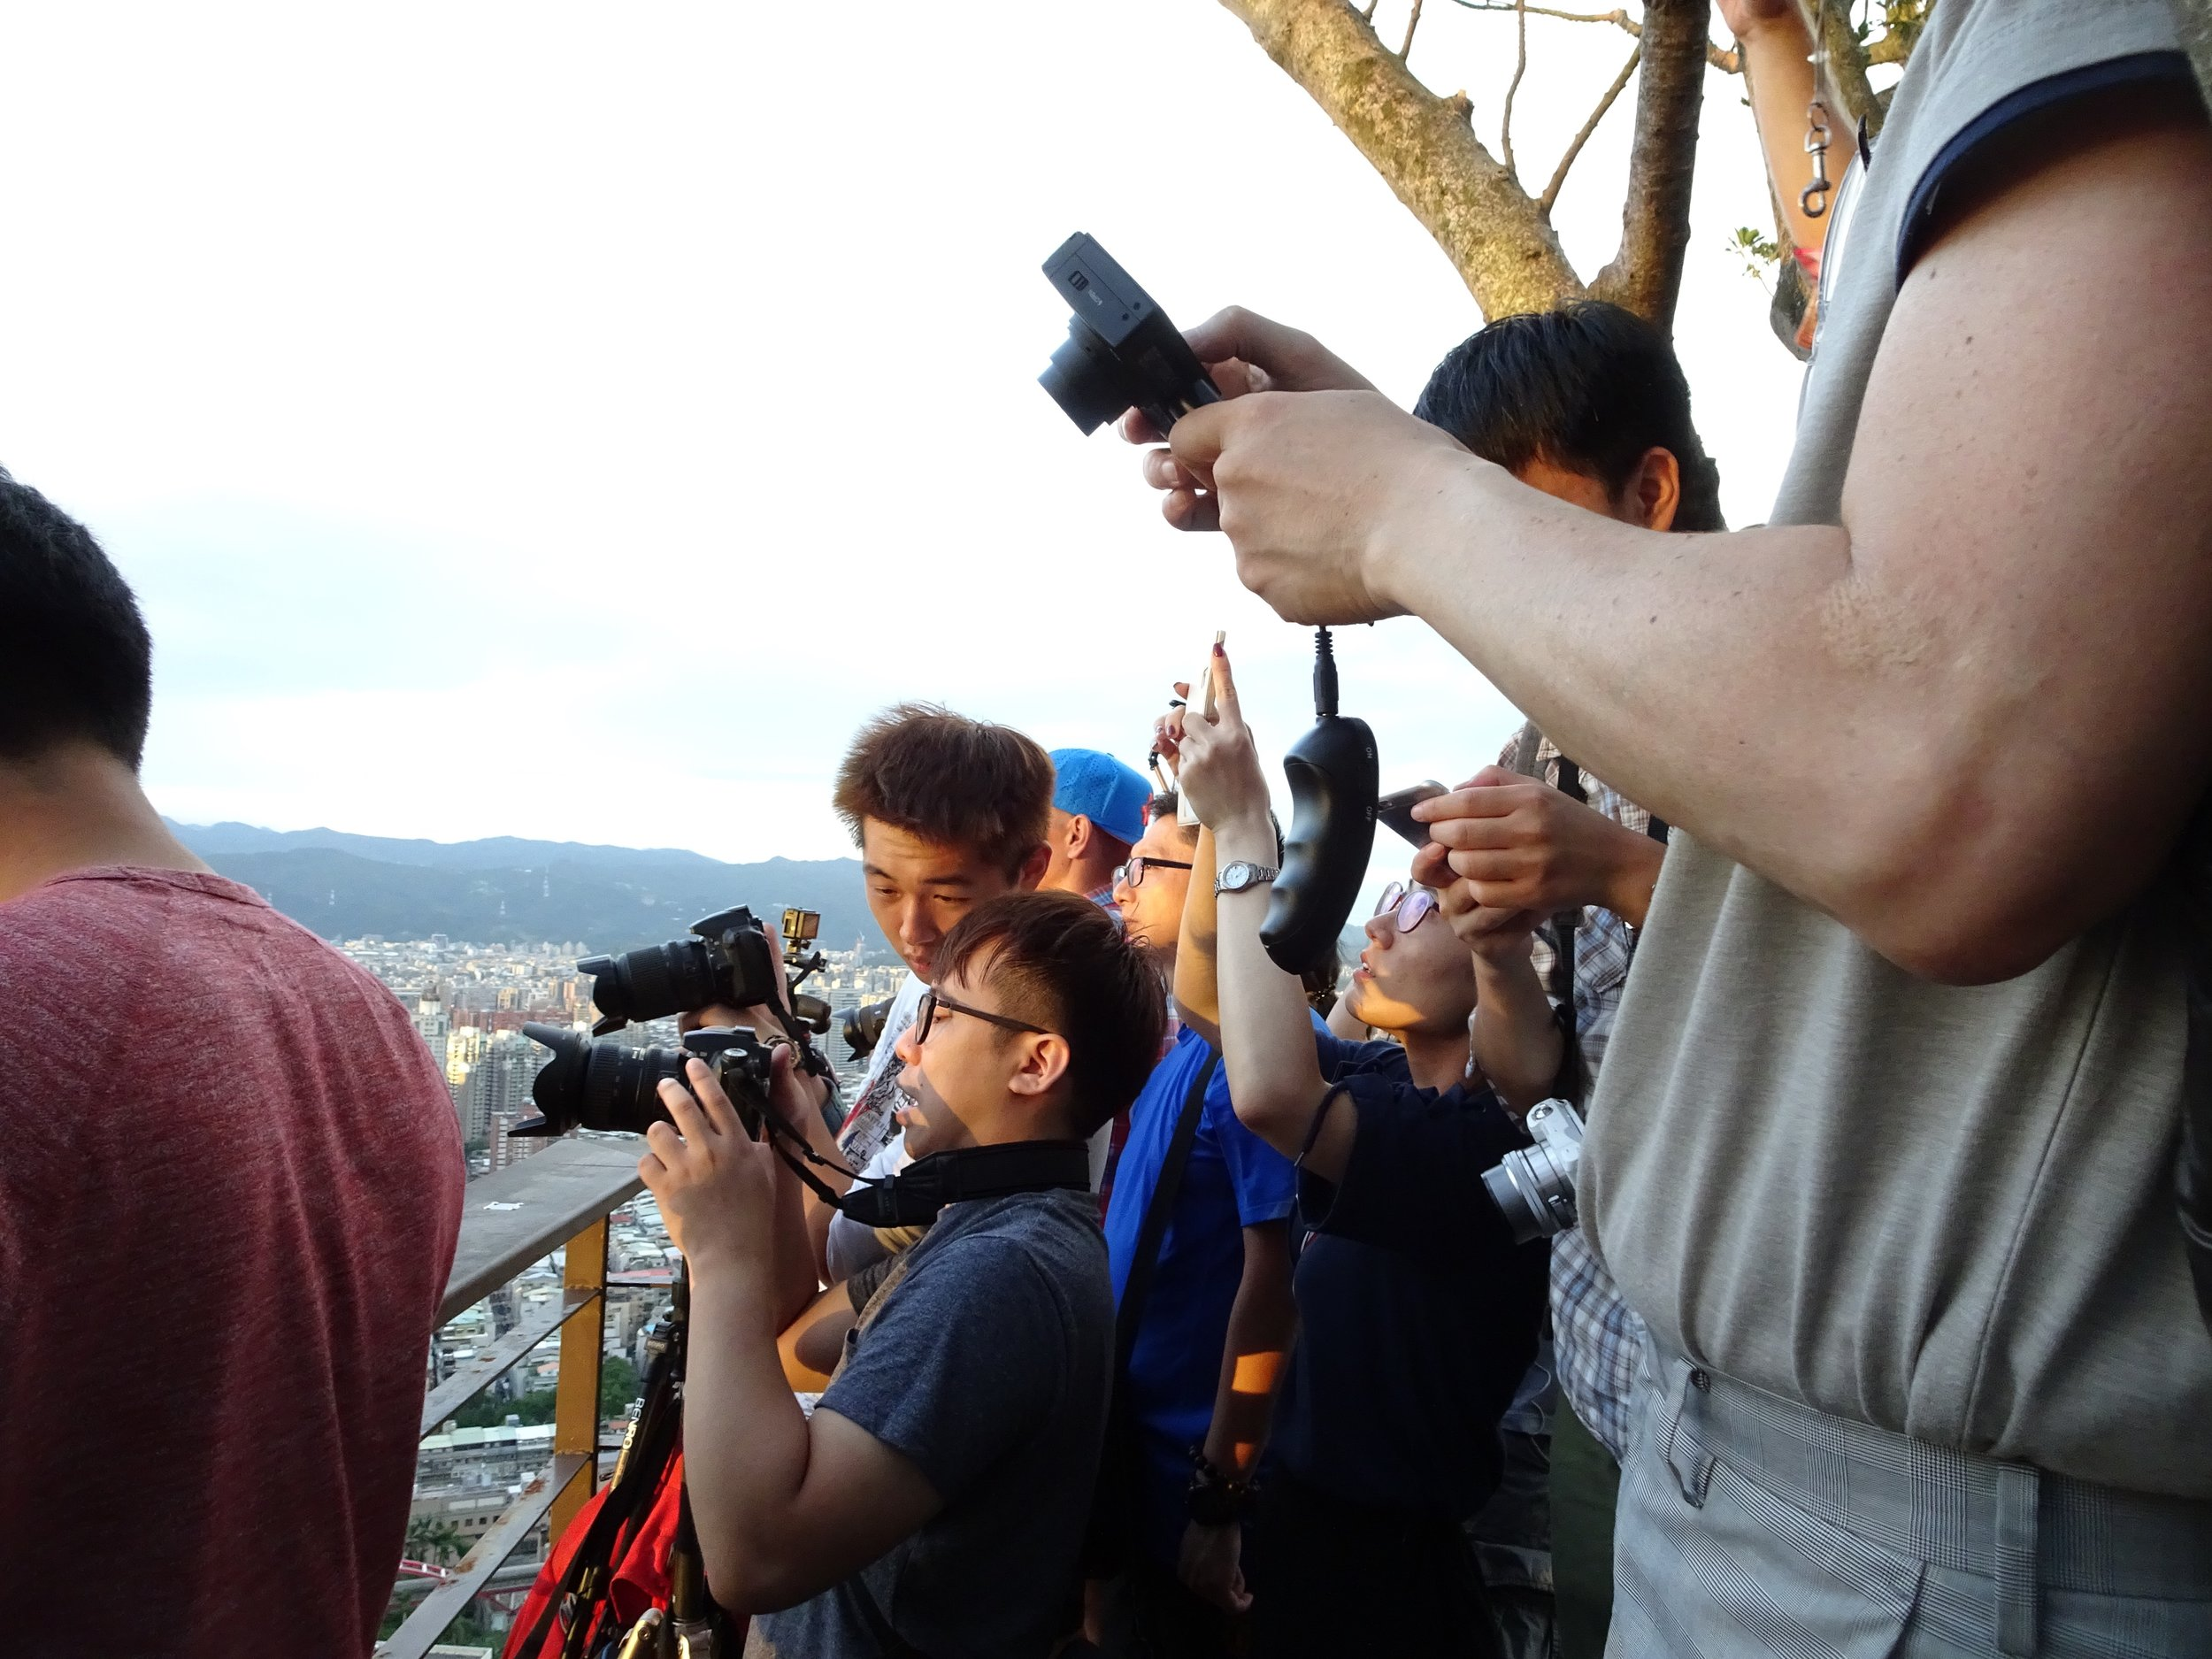 just a few people taking pictures on mt. elephant in TAIPEI, TAIWAN - M.QUGLEY